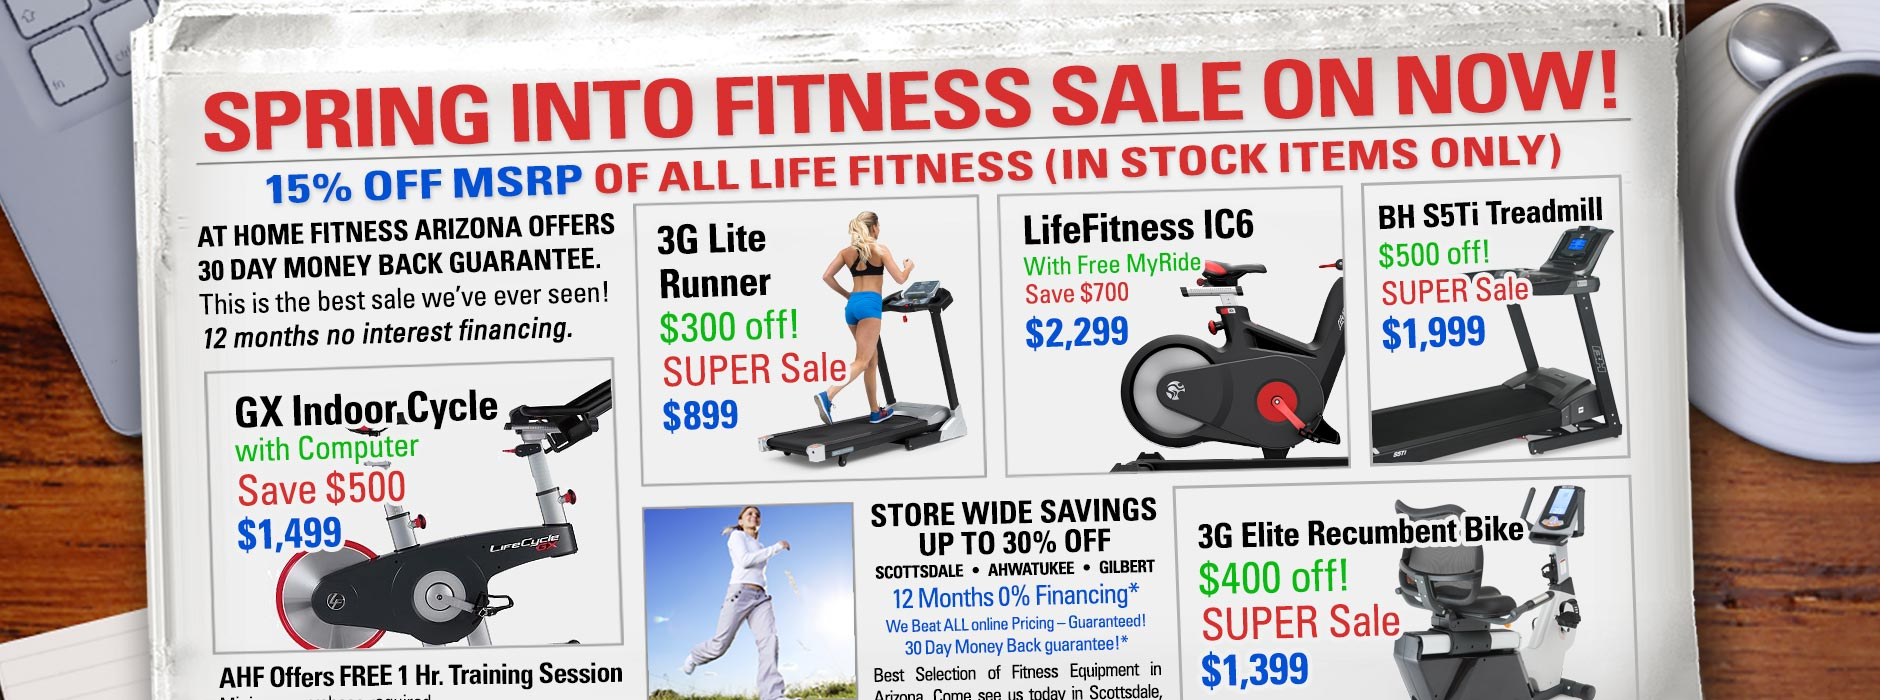 2018 Spring into Fitness Sale At Home Fitness